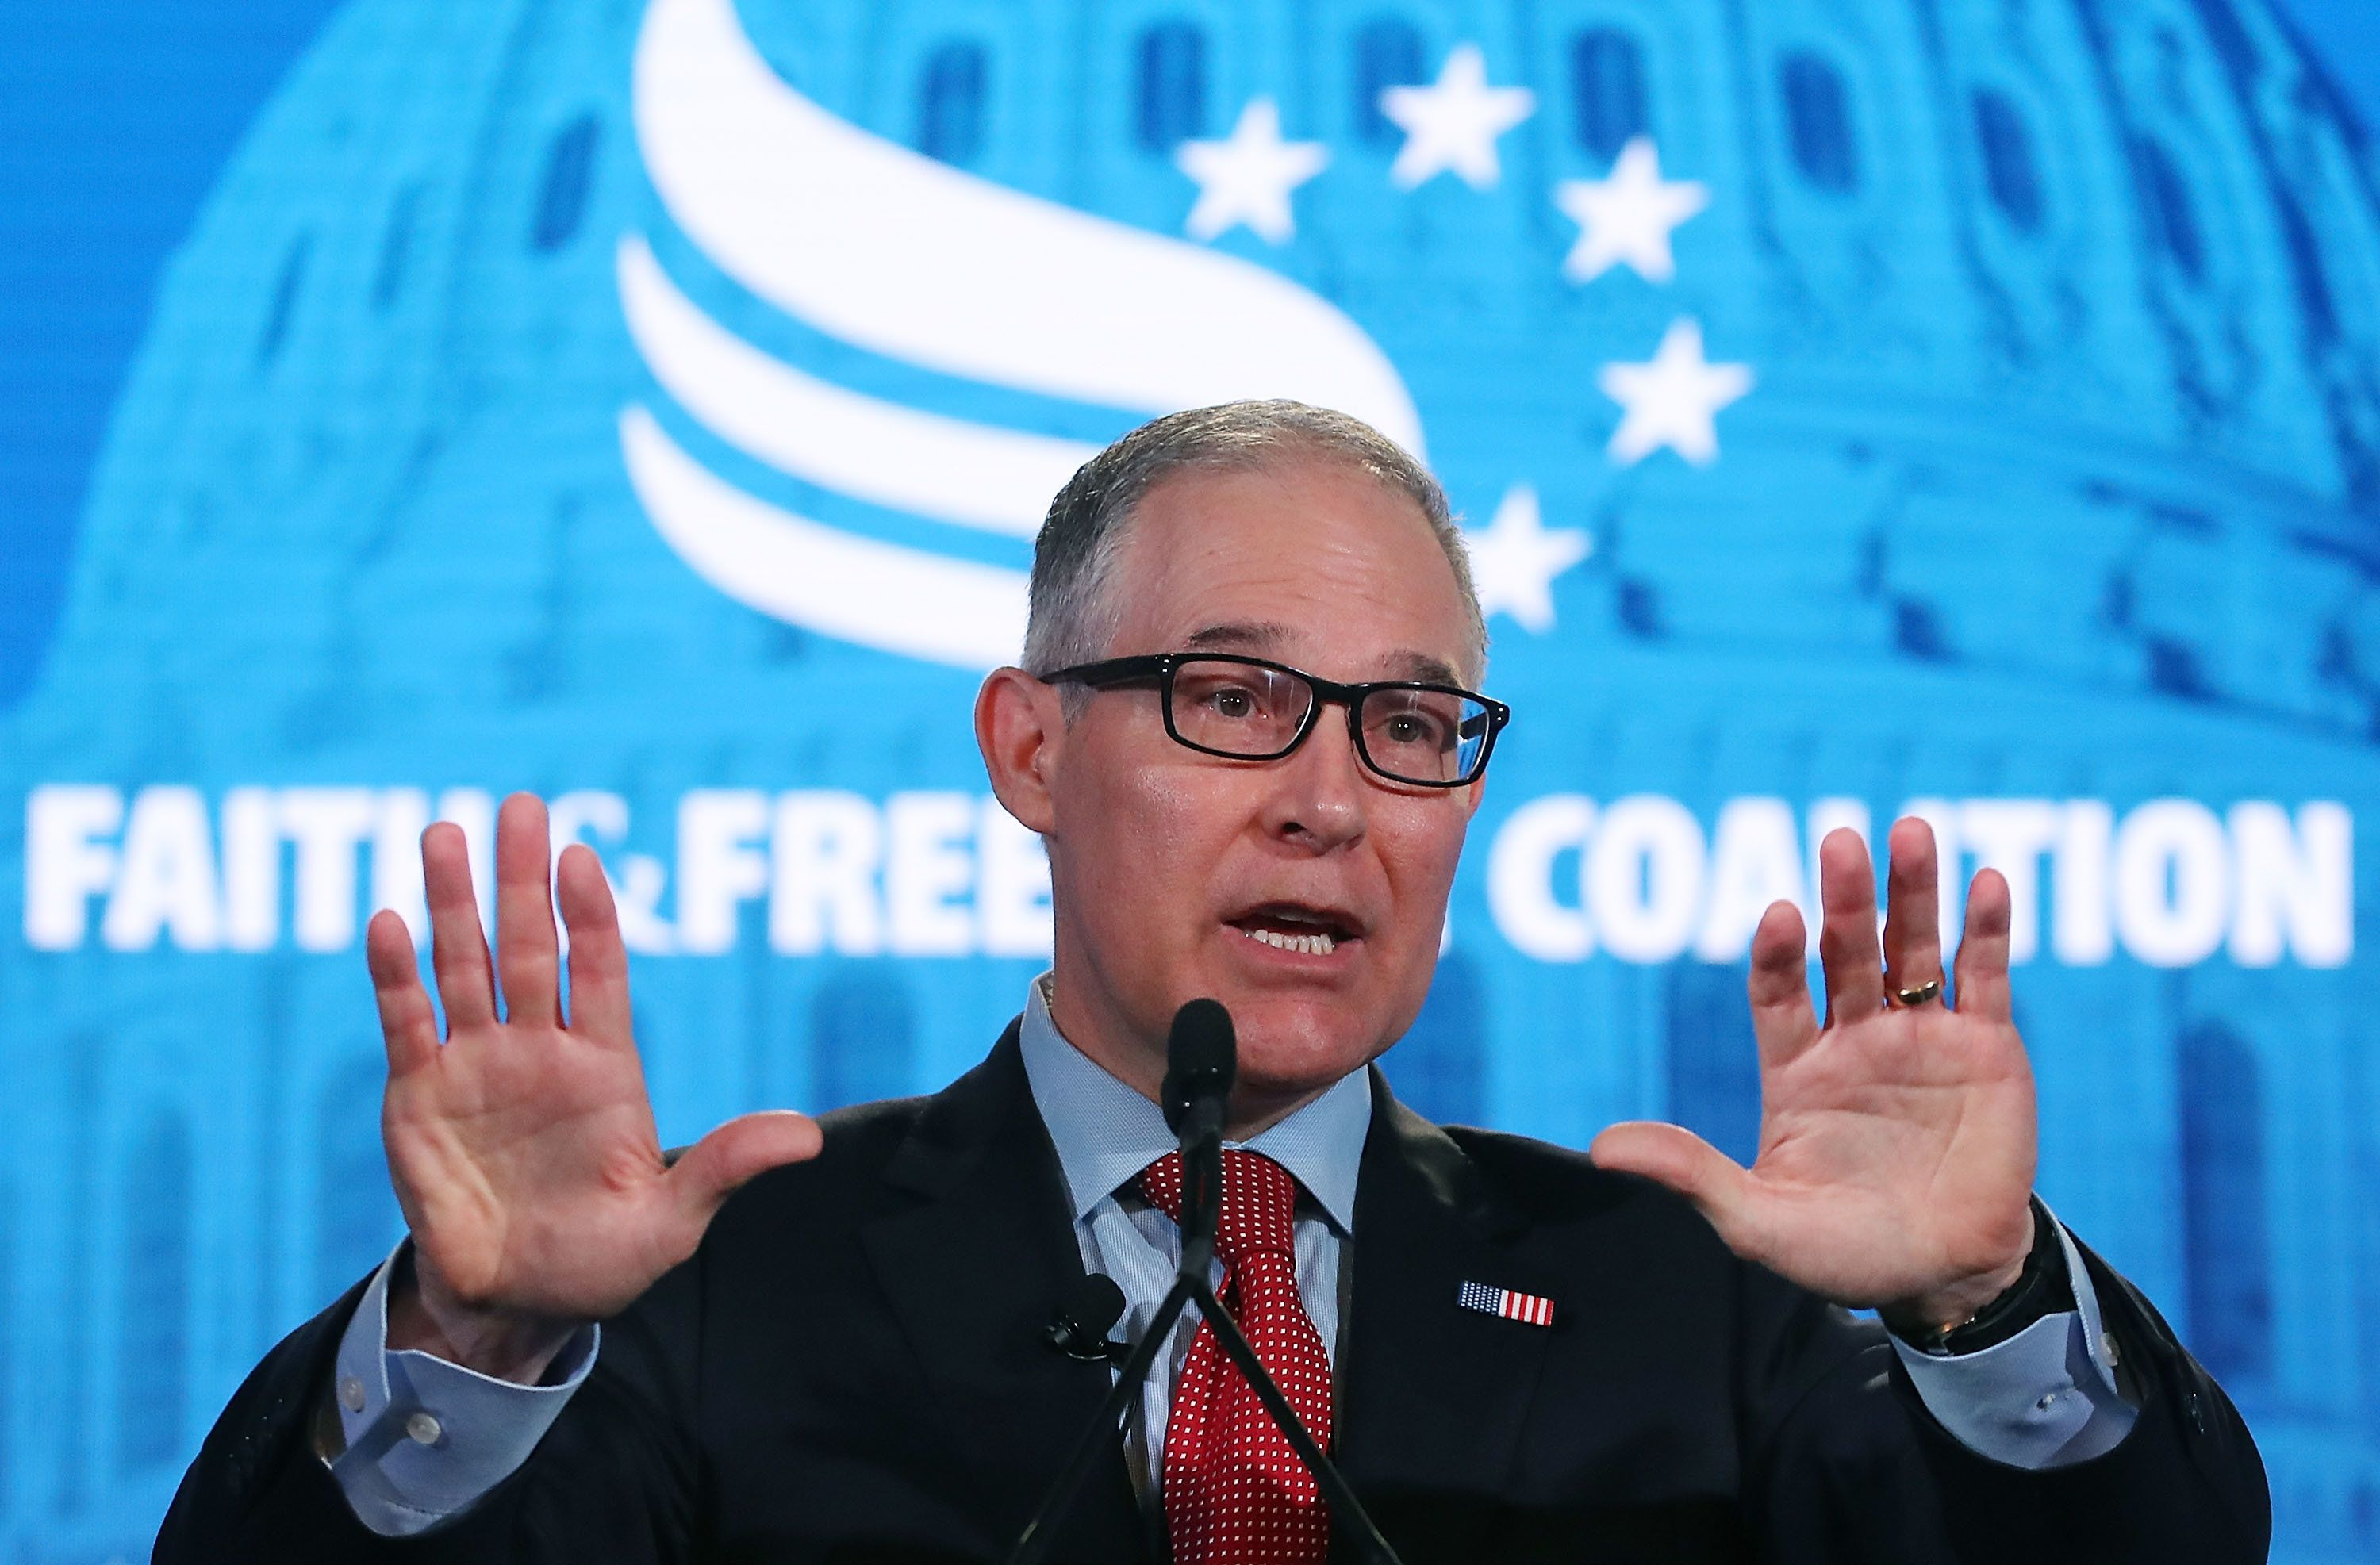 WASHINGTON, DC - JUNE 08:  EPA Administrator Scott Pruitt speaks at the Faith and Freedom Coalition Road to Majority Policy Conference, at the Omni Shoreham Hotel, on June 8, 2018 in Washington, DC.  Pruitt is facing mutiple ethics scandals from his actions since taking over the agency.  (Photo by Mark Wilson/Getty Images)